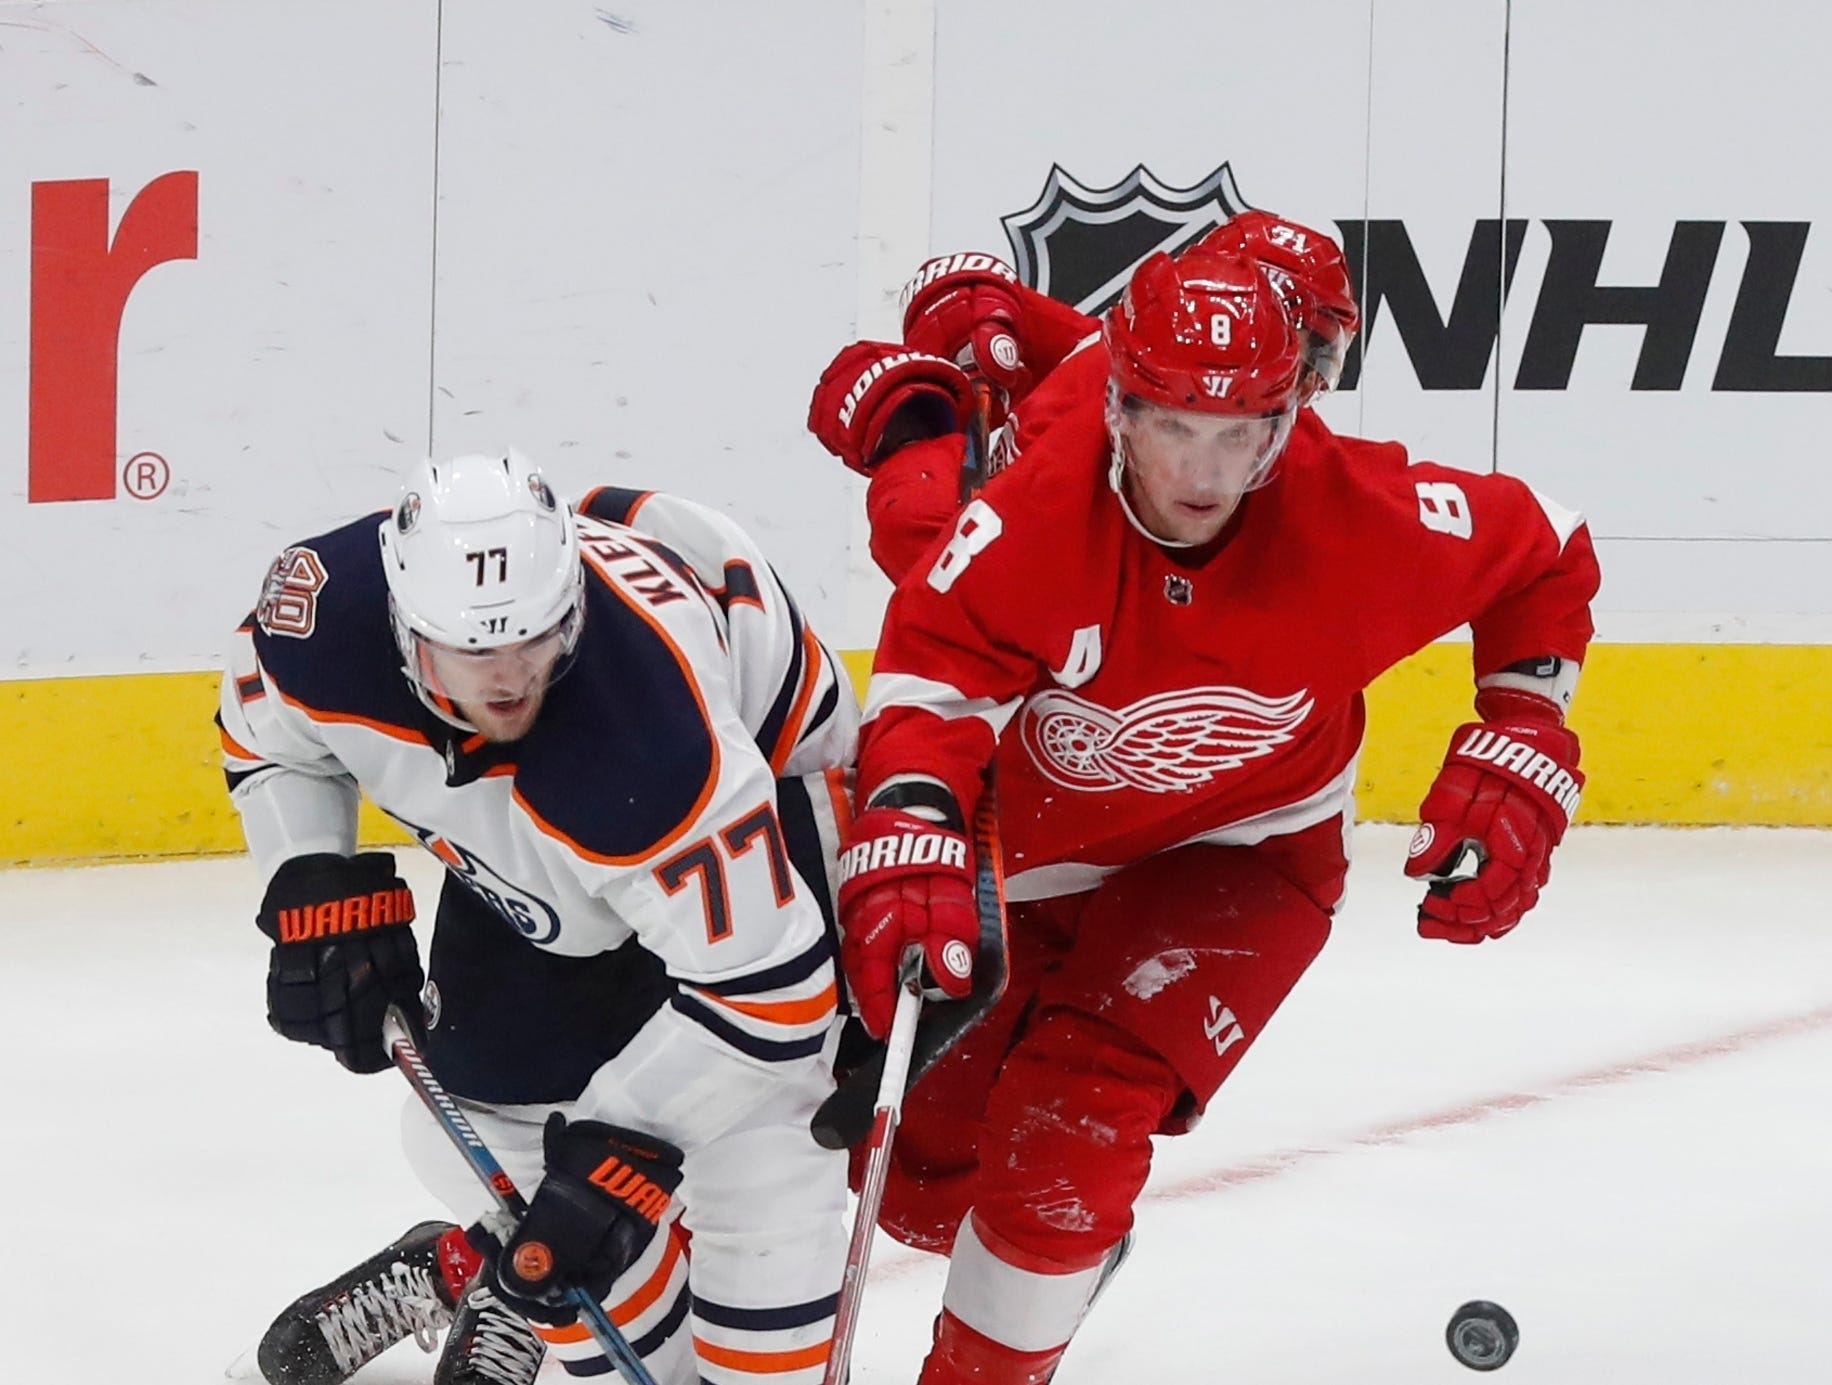 Edmonton Oilers defenseman Oscar Klefbom (77) and Detroit Red Wings left wing Justin Abdelkader (8) chase the puck during the third period of an NHL hockey game, Saturday, Nov. 3, 2018, in Detroit. Edmonton won, 4-3. (AP Photo/Carlos Osorio)